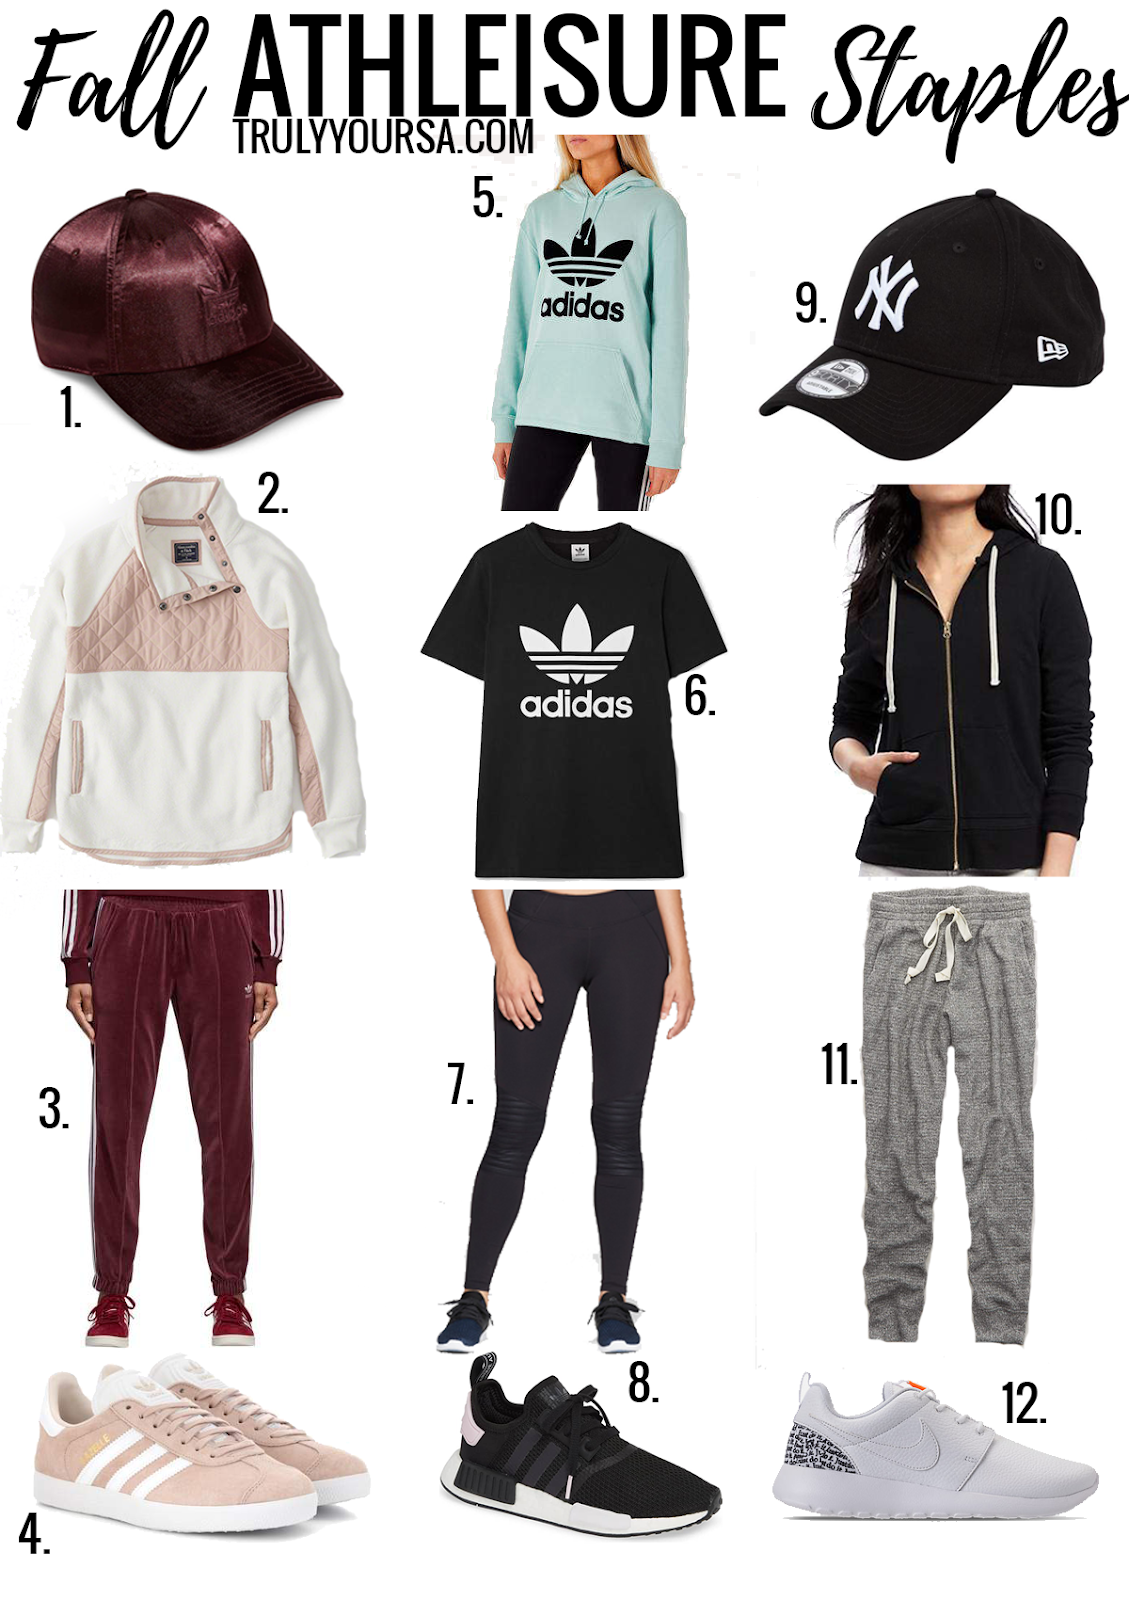 As a stay-at-home mom there's nothing I wear more than joggers or leggings and I'm not complaining at all! They're so comfortable and if I have to leave the house, I still look pretty put together. Here are a few of my favorite athleisure staples that are sure to be your favorites, too! #fallfashion #athleisure